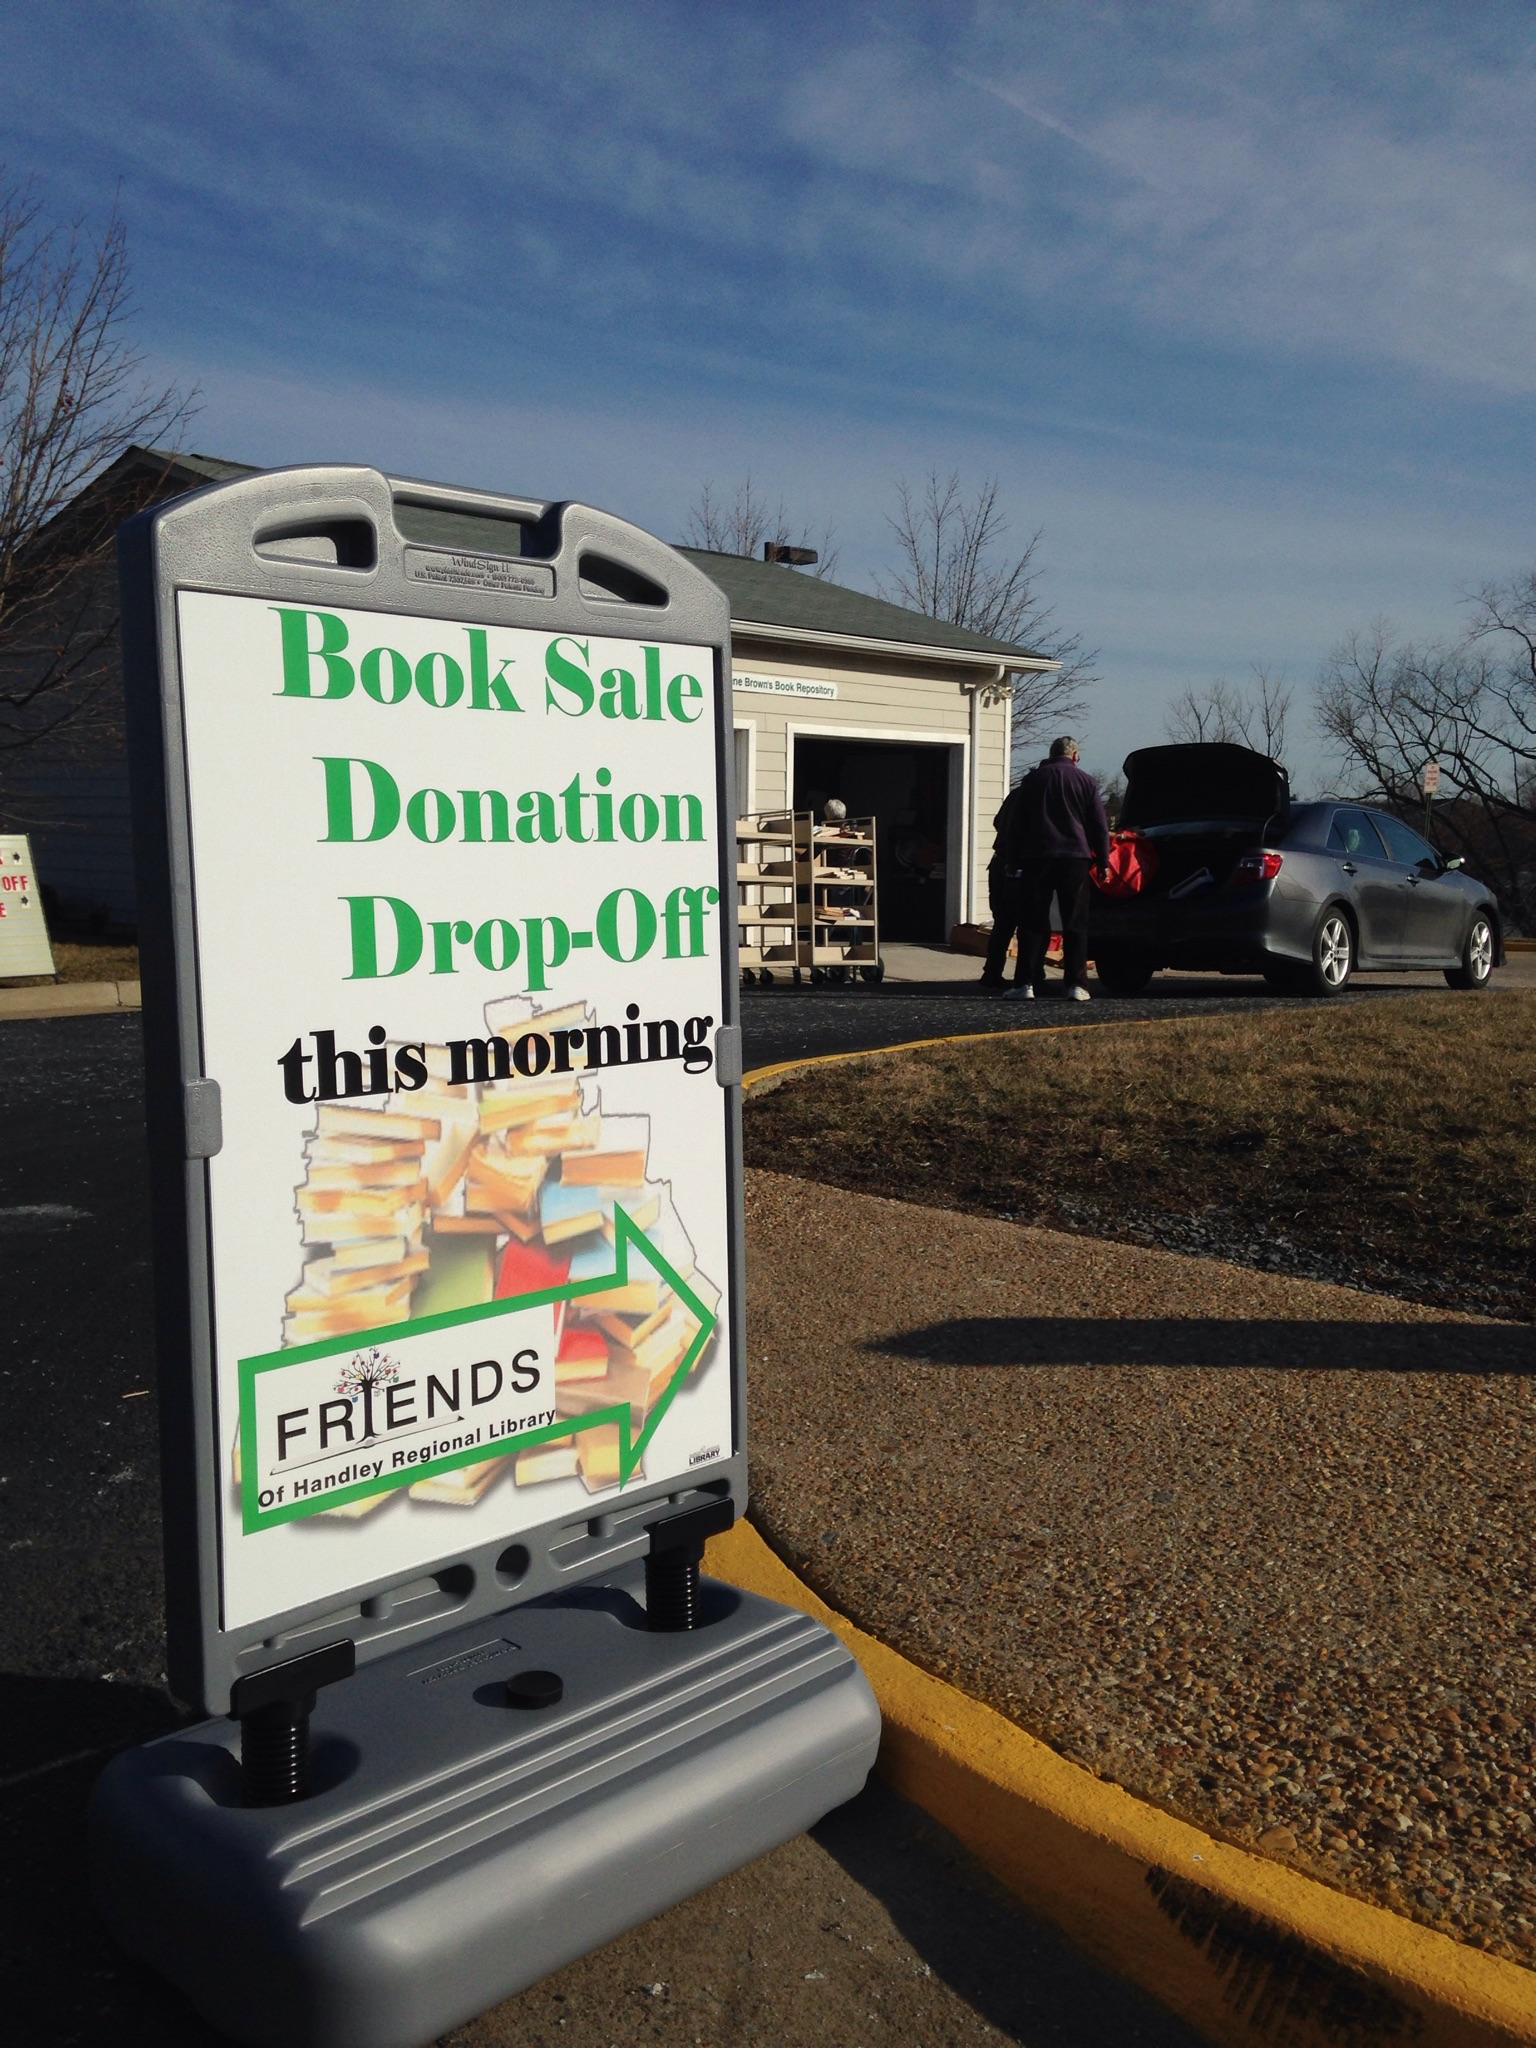 Book Drop-Off Morning at Bowman Library